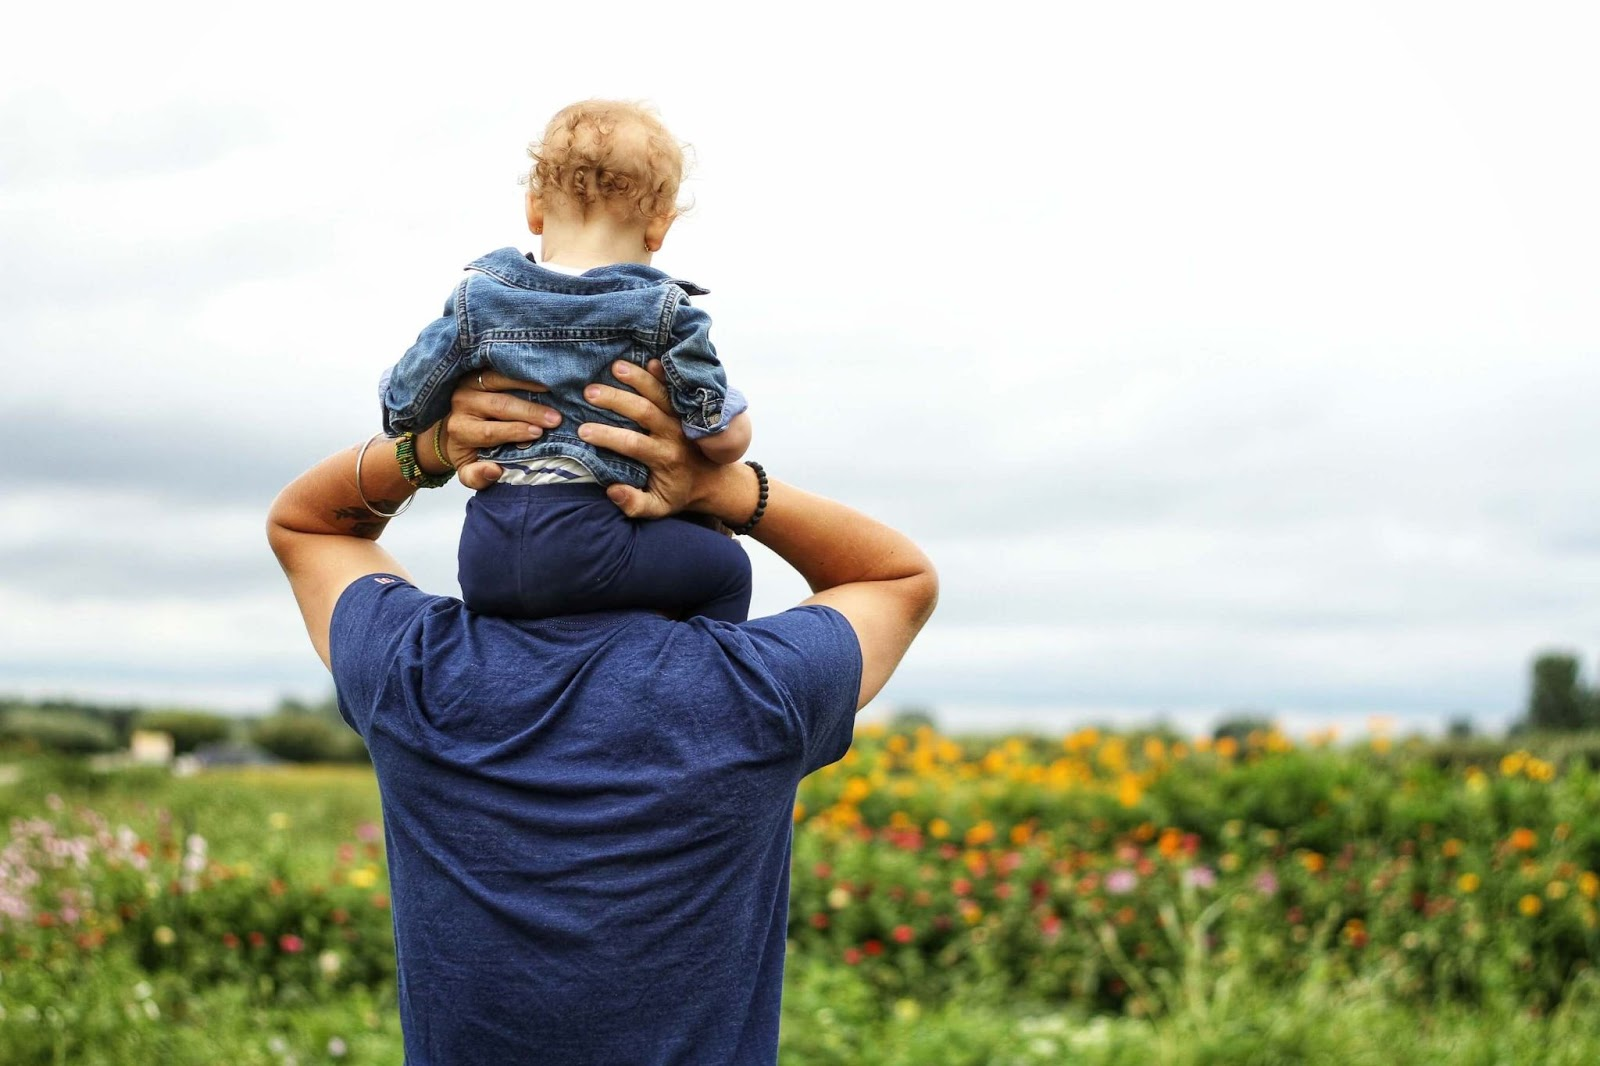 Man and his son, wearing blue, in a field, with backs turned